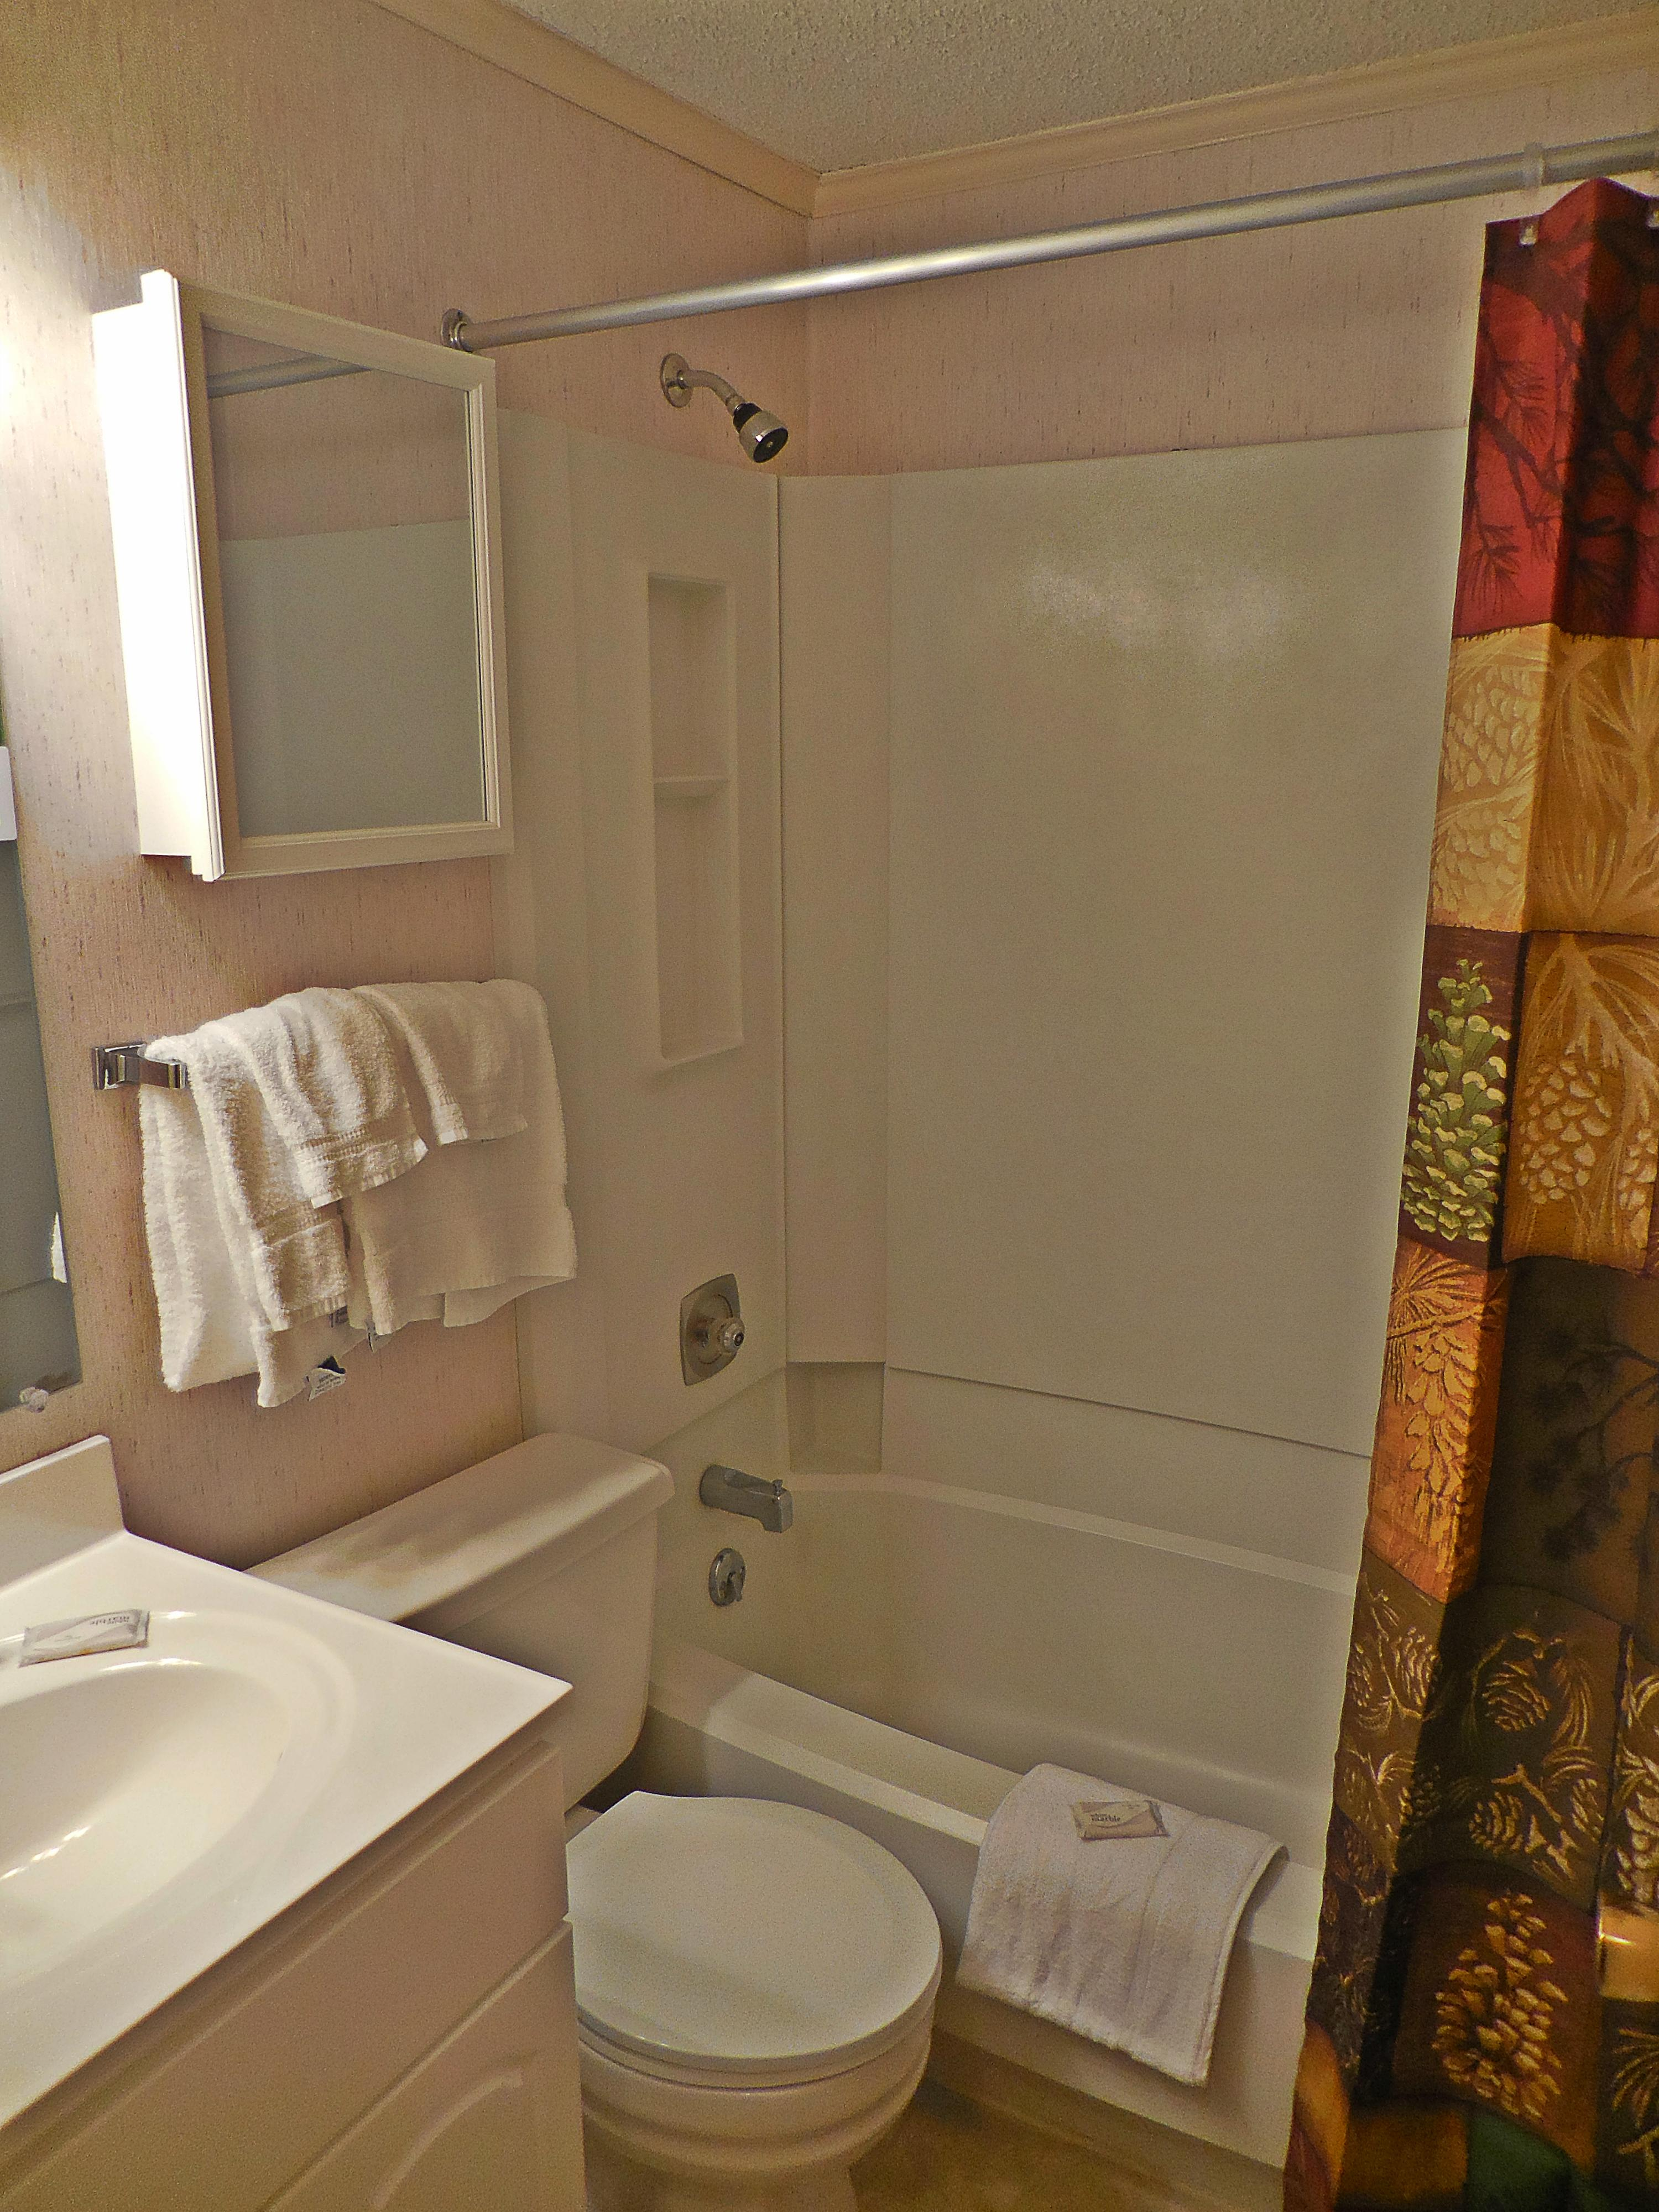 Full bathroom with tub and shower - CLEAN!